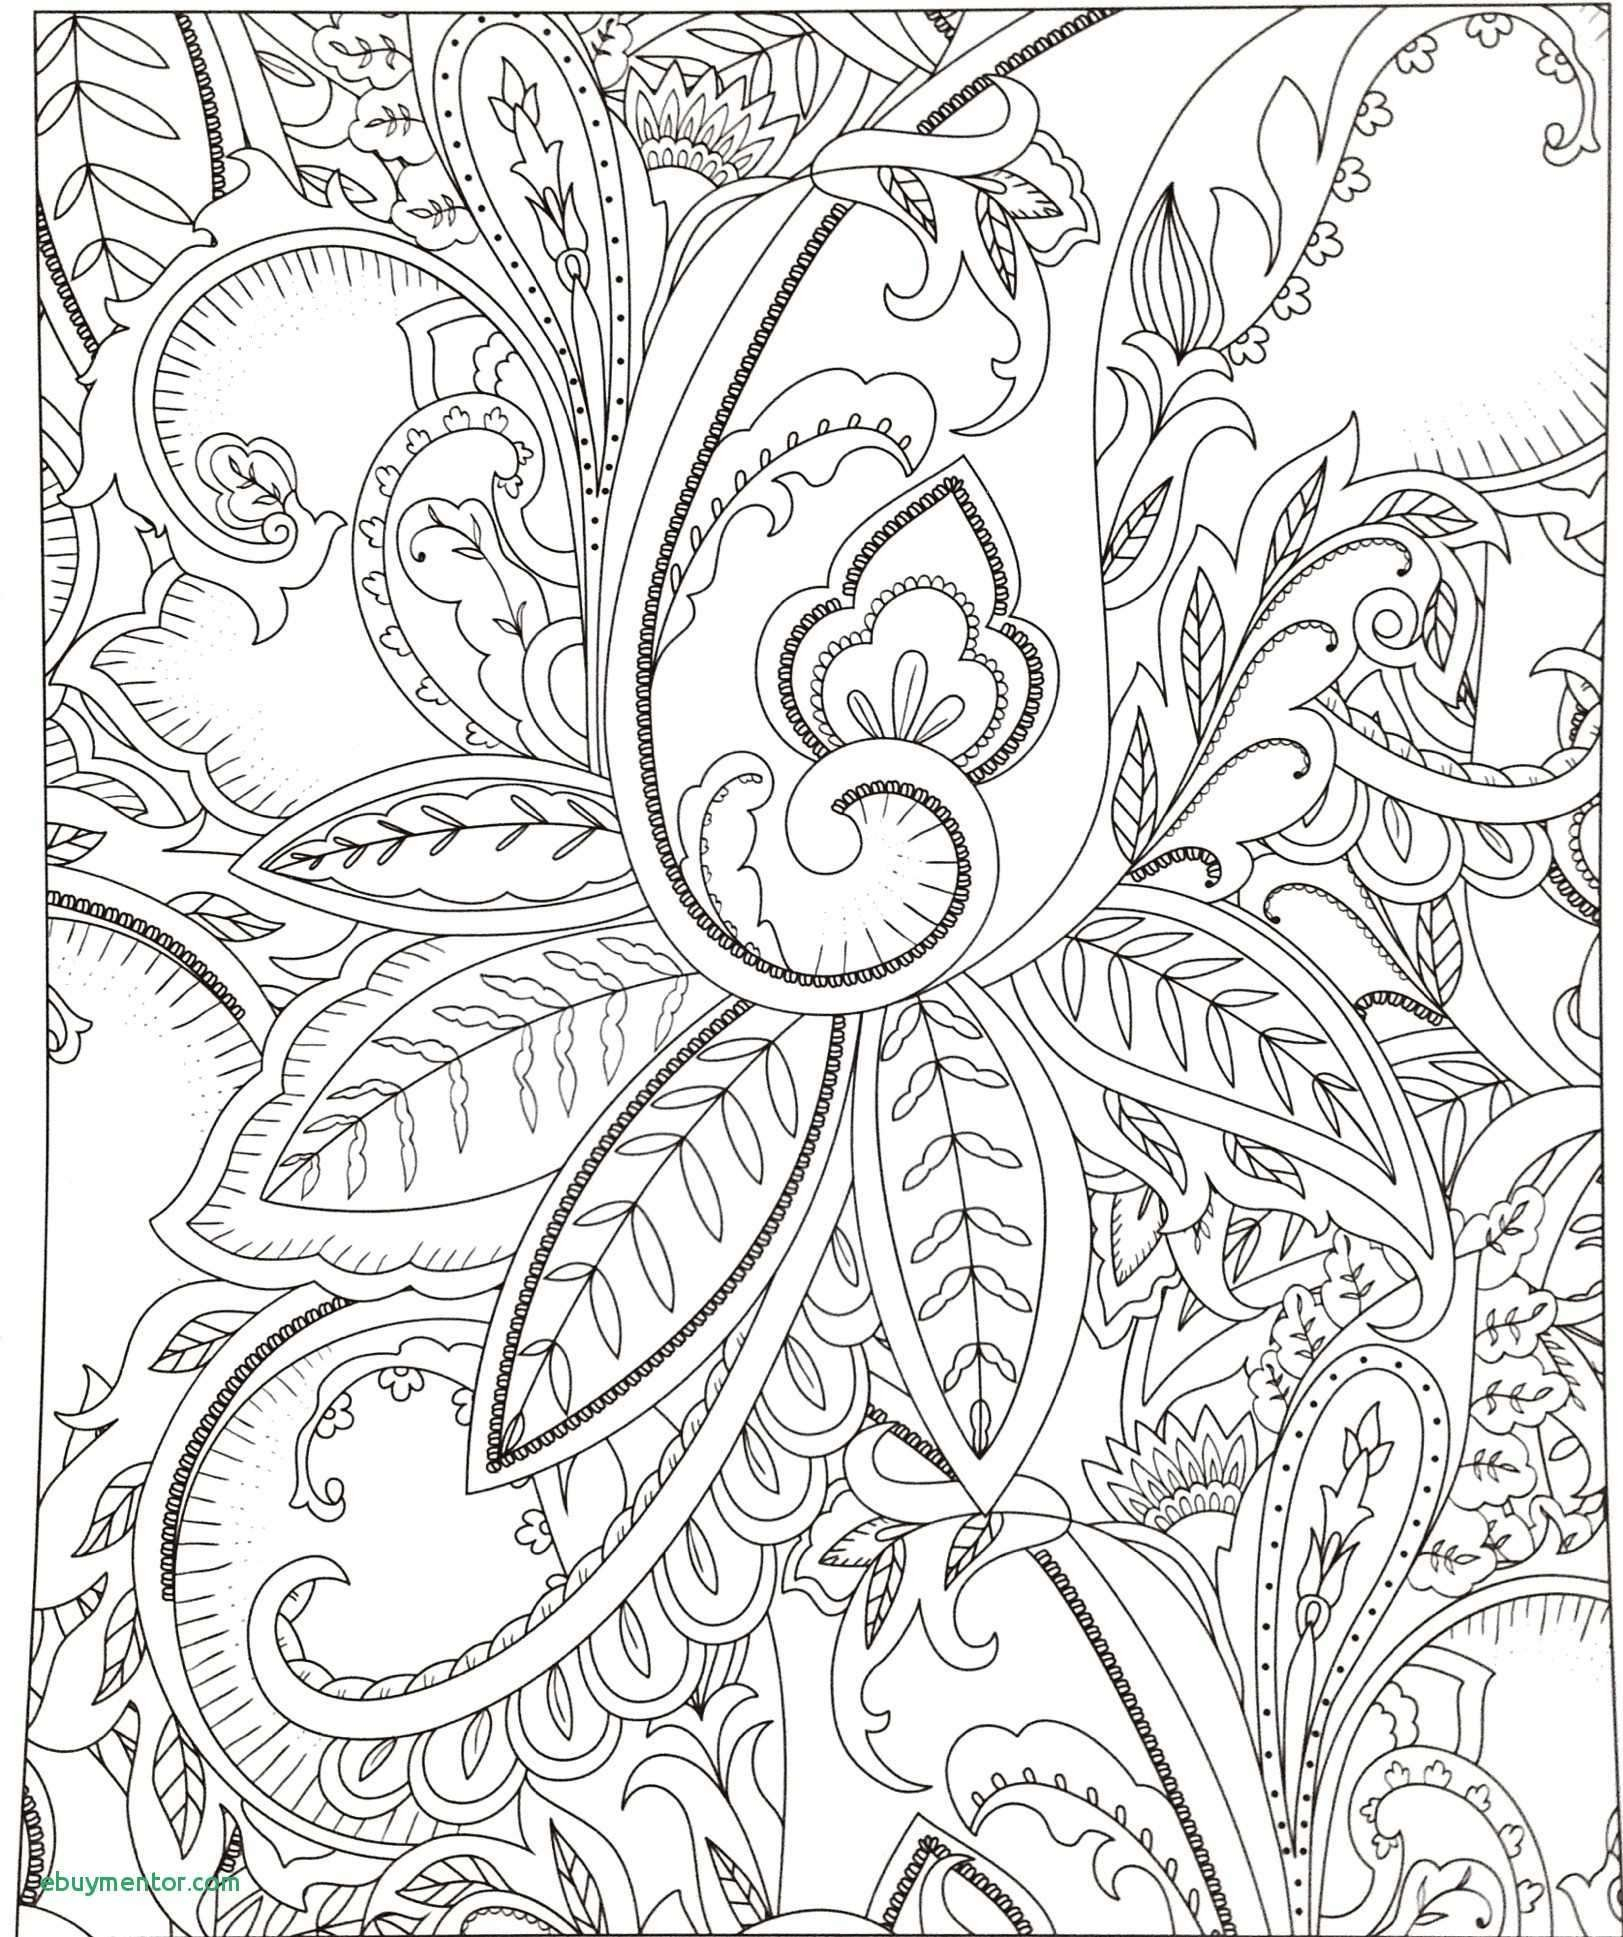 Easy Paisley Coloring Pages  to Print 15j - Free Download